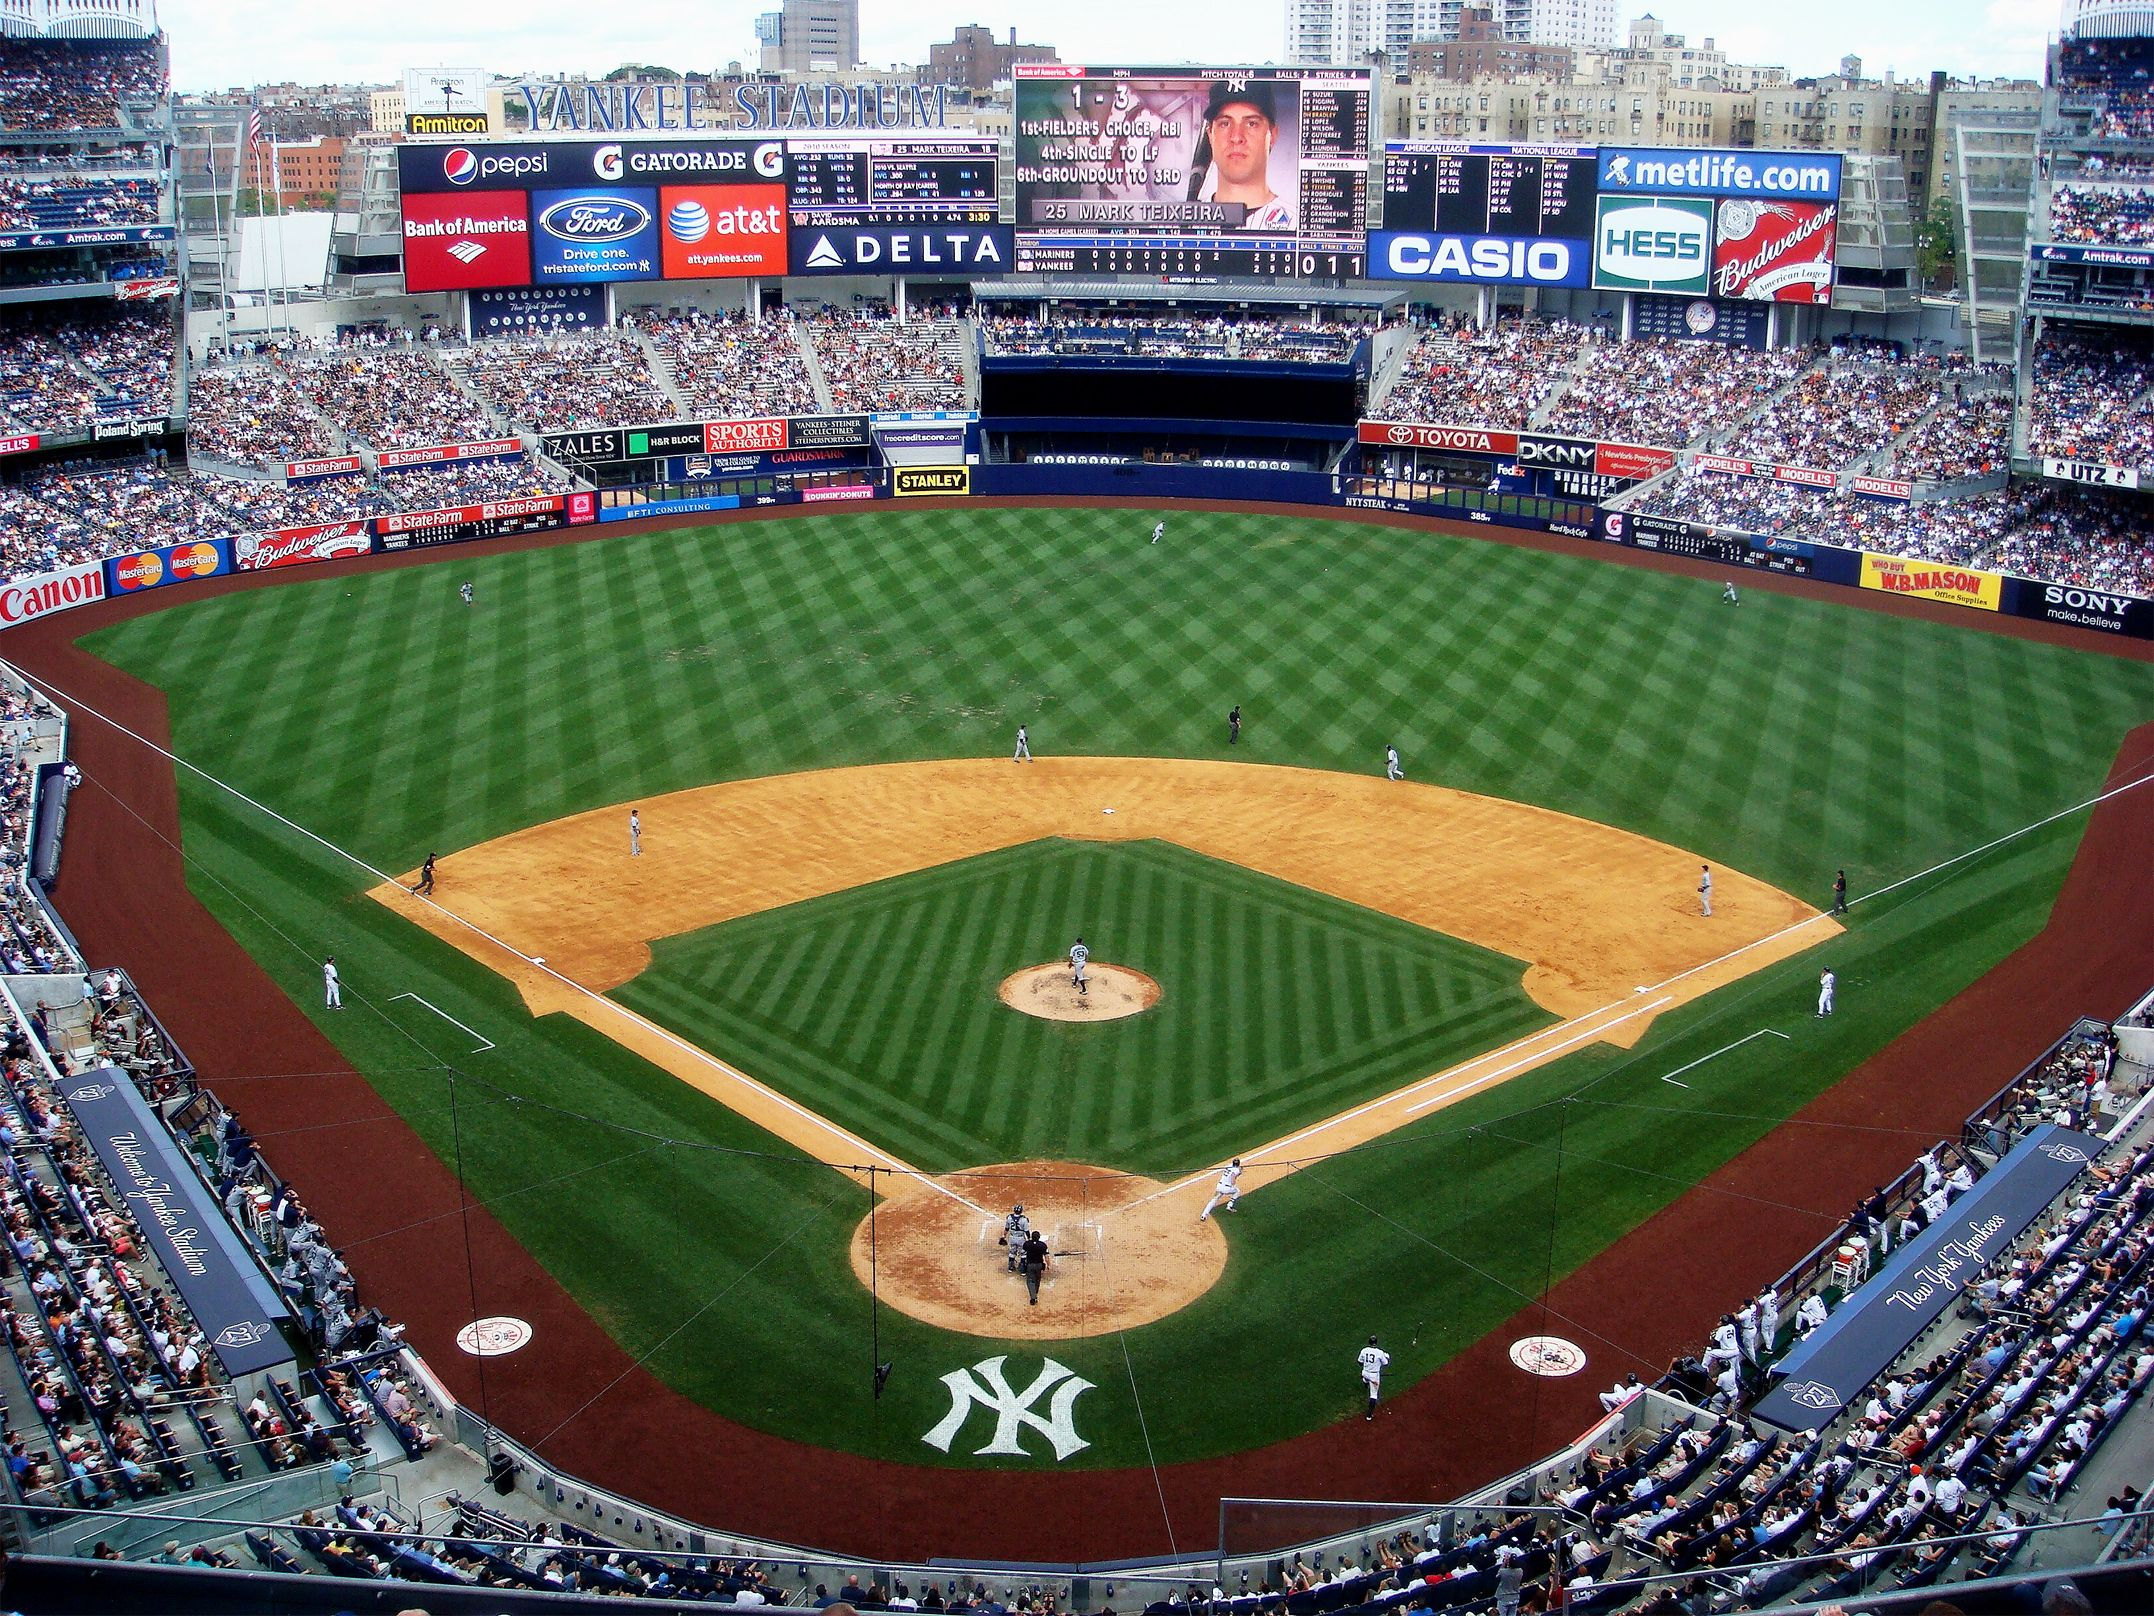 The New York Yankees Play In The Bronx Yankee Stadium Is A Beautiful Place To Go On A Summer Day New York Yankees Stadium Yankee Stadium Baseball Stadium